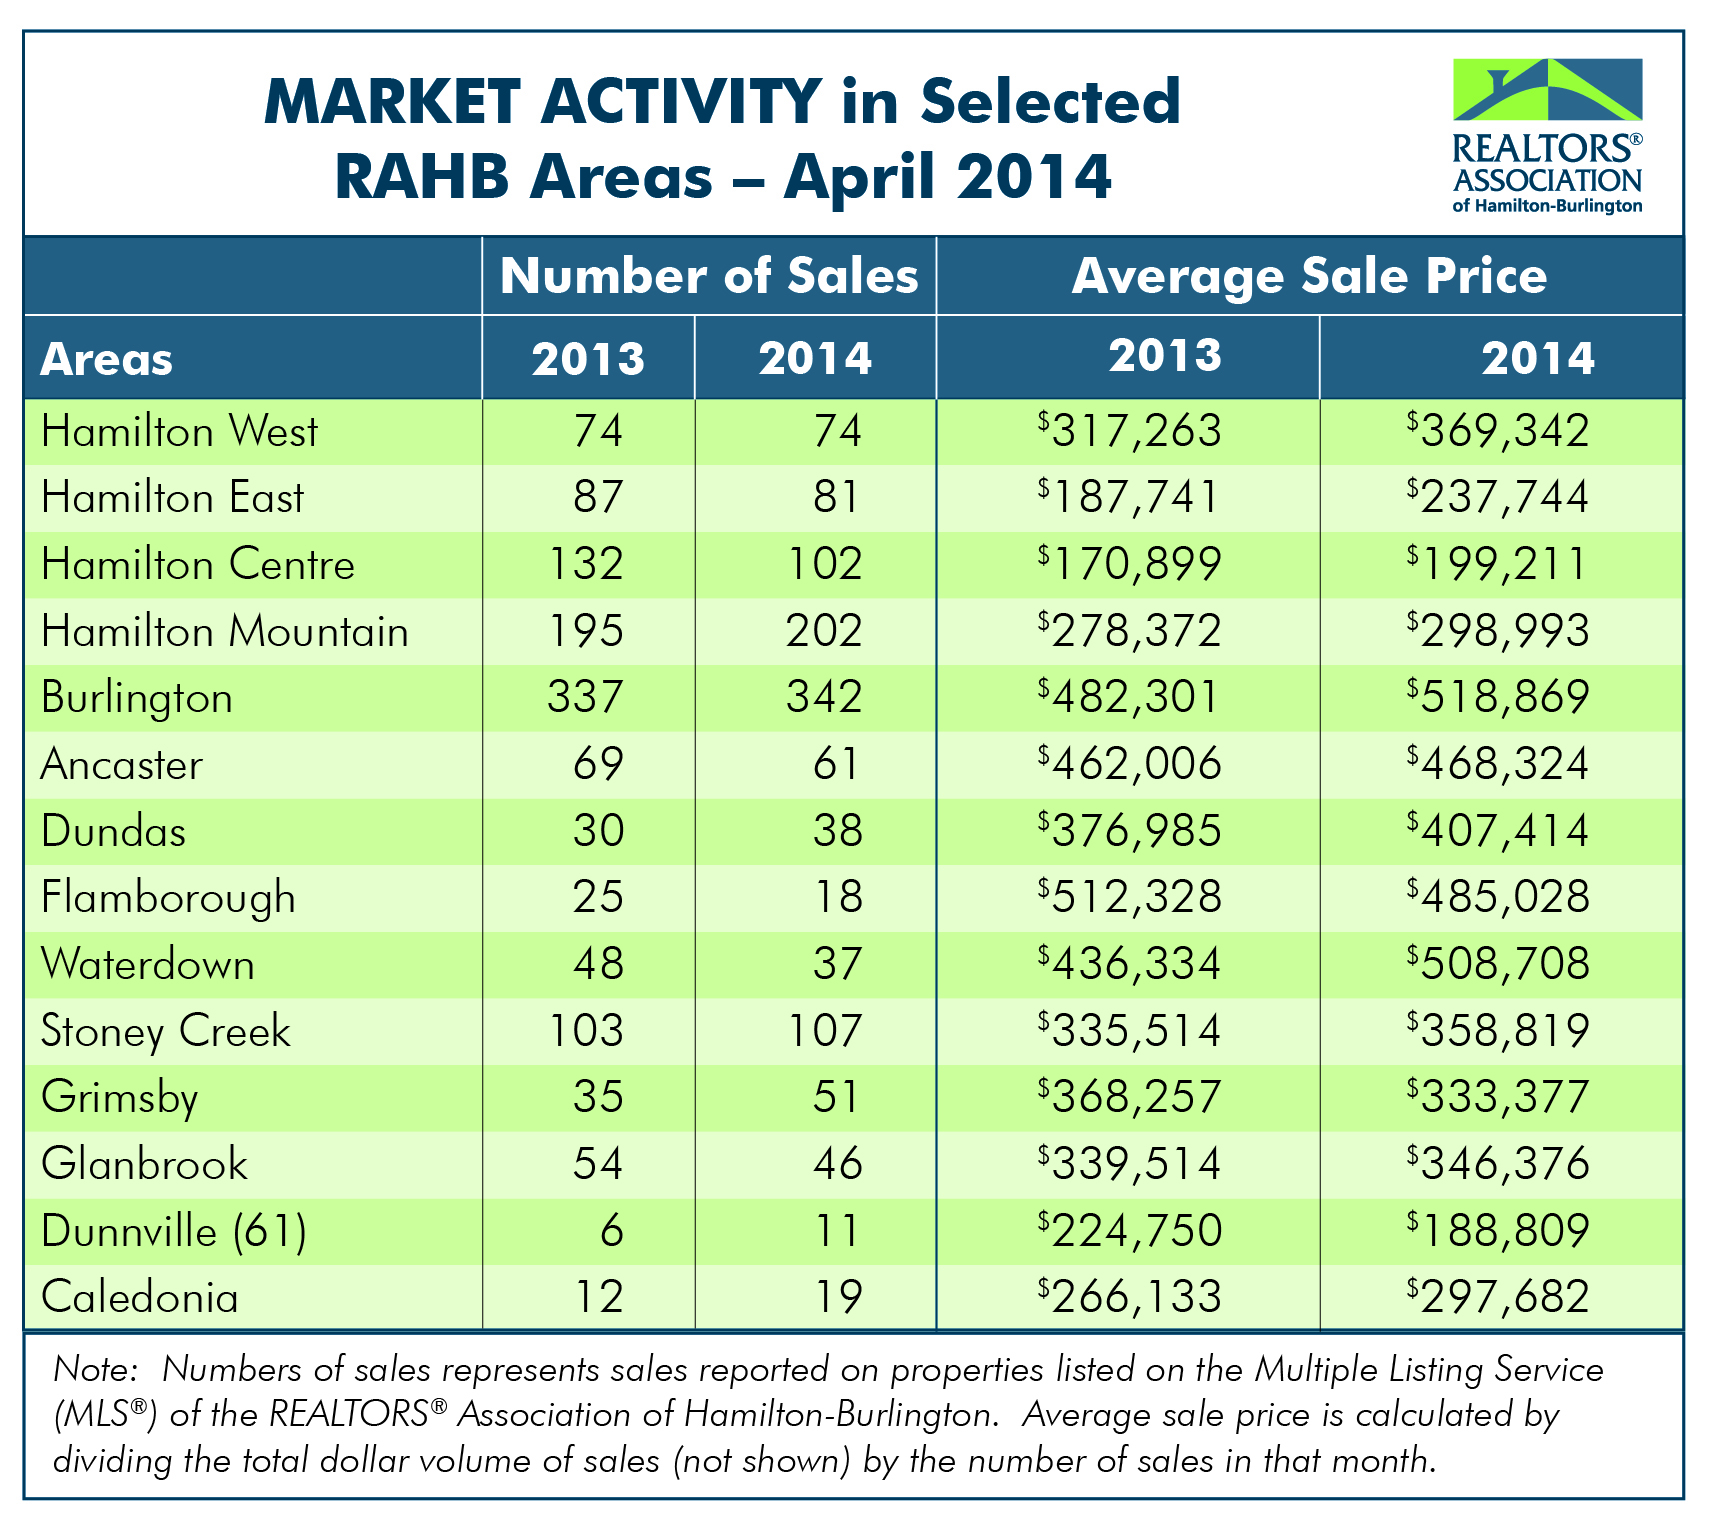 RAHB Market Activity for April